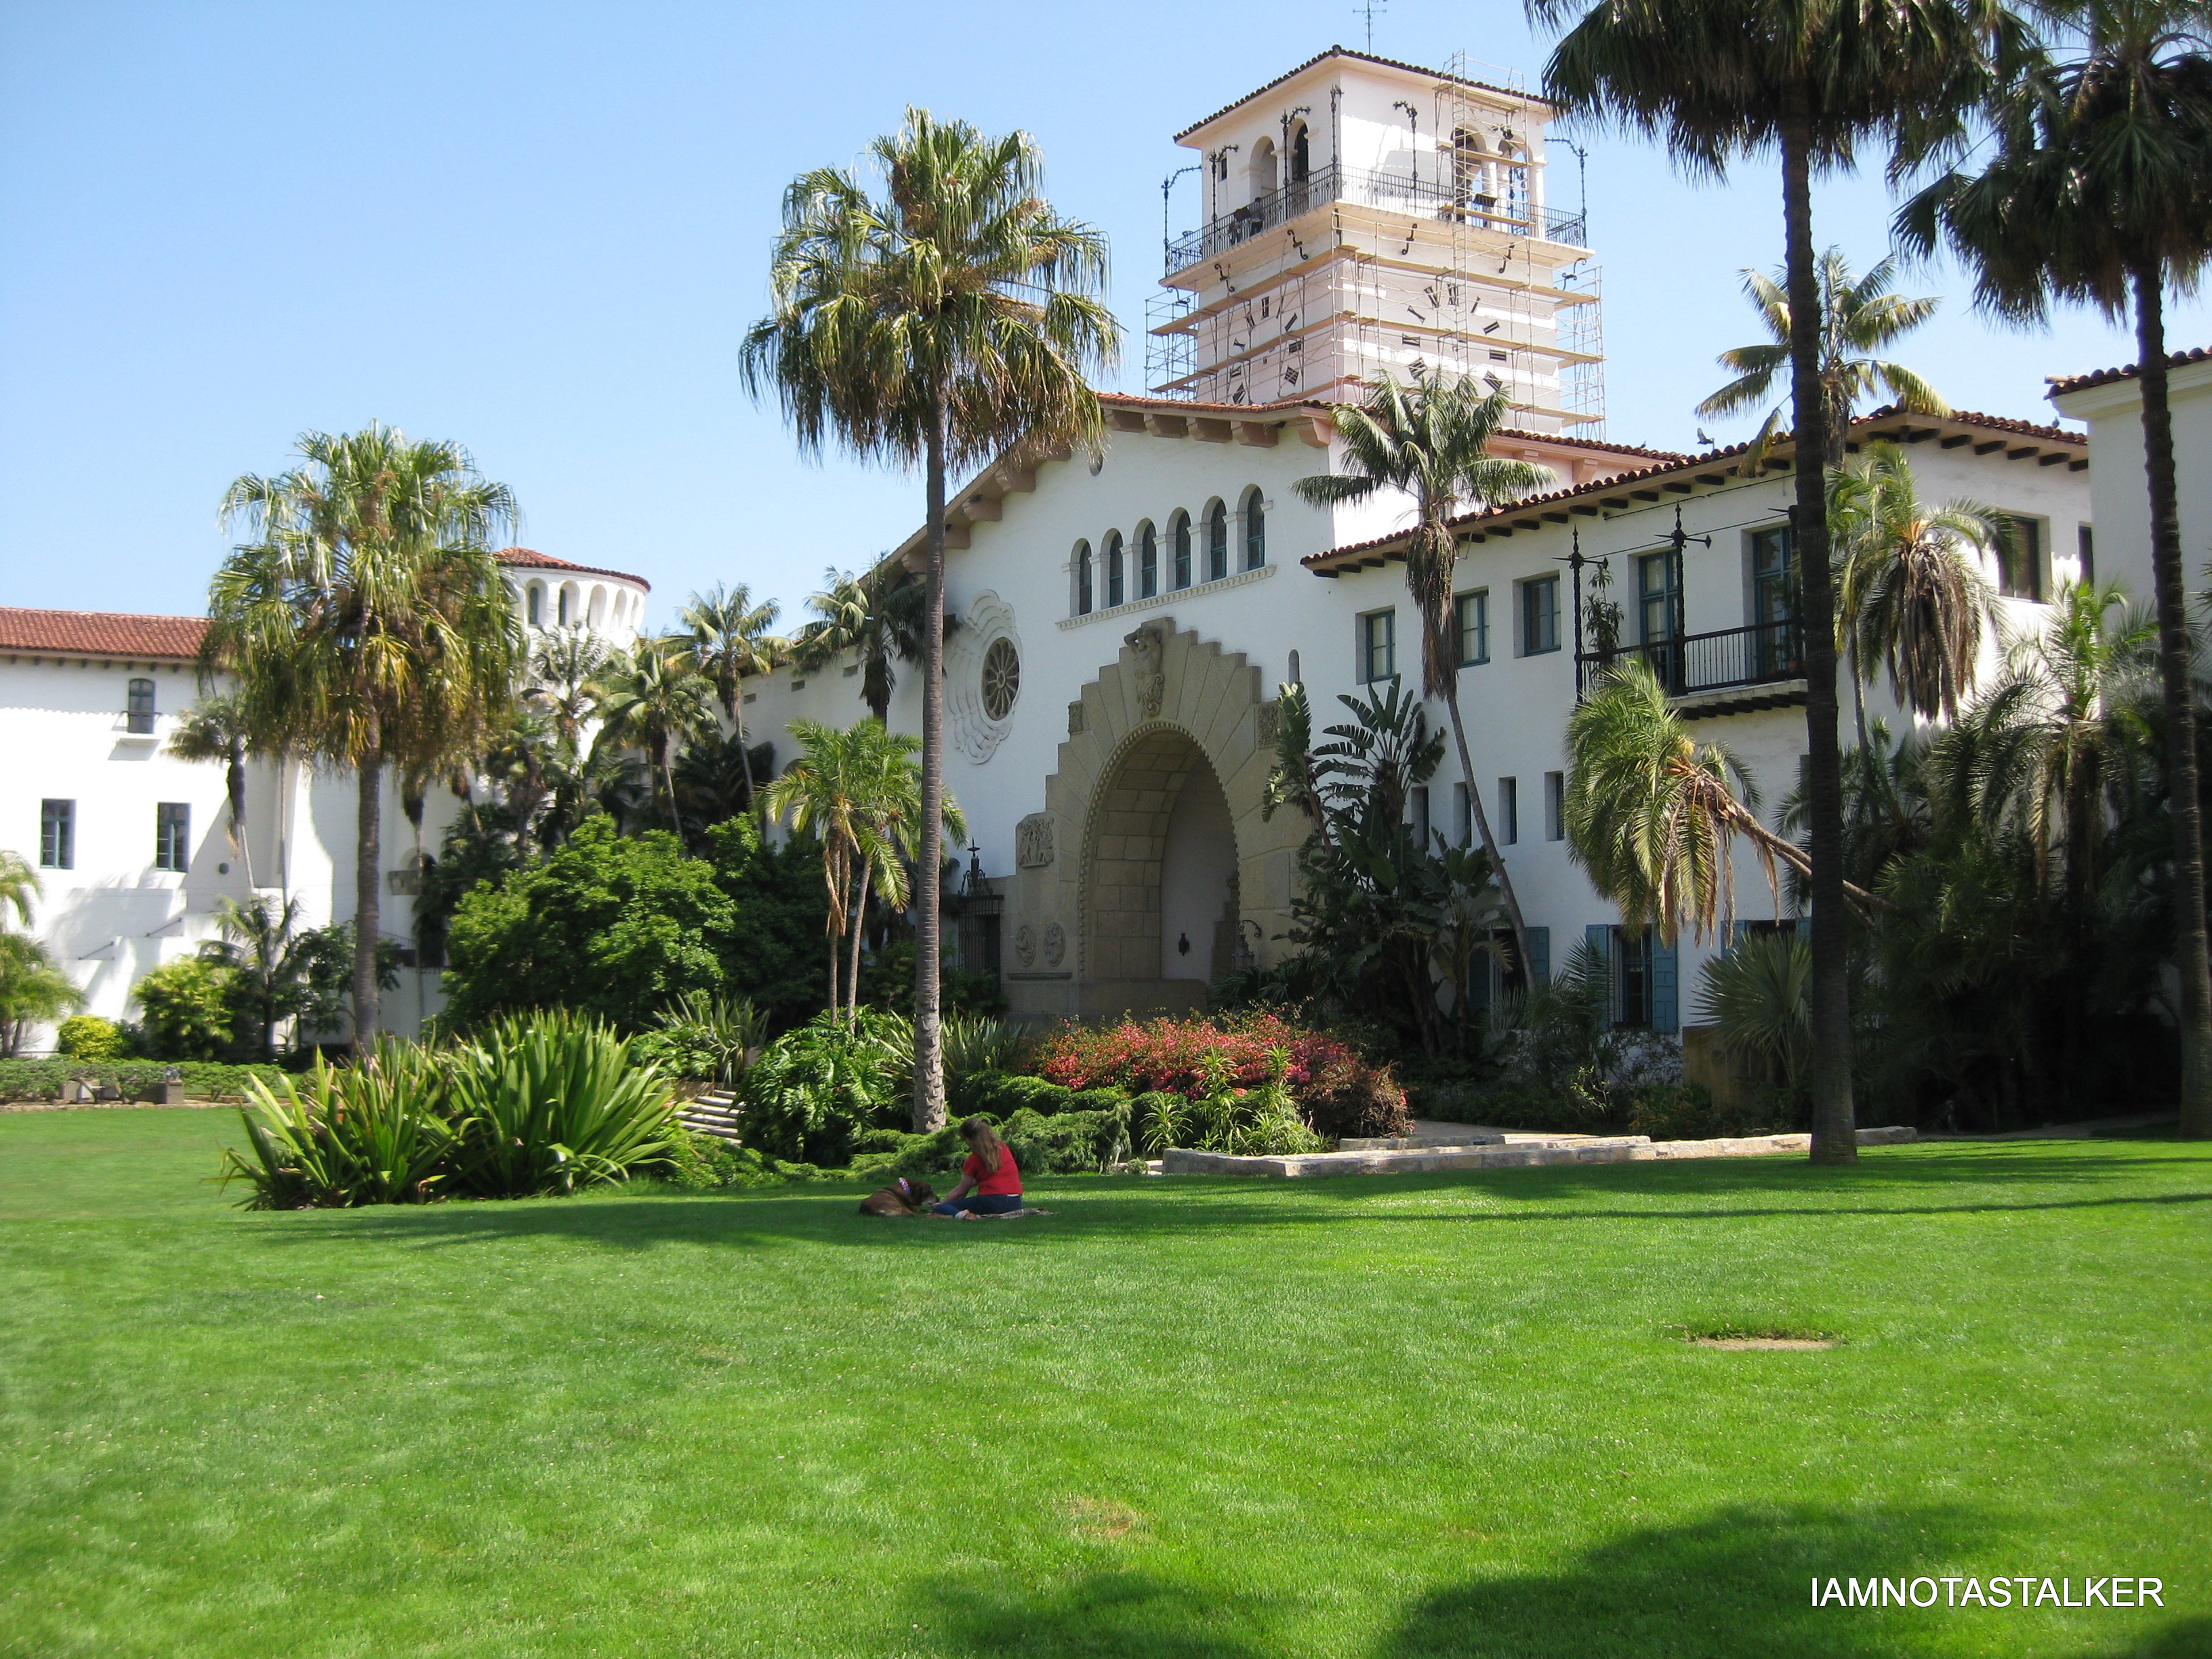 Hotels Near Santa Barbara Courthouse